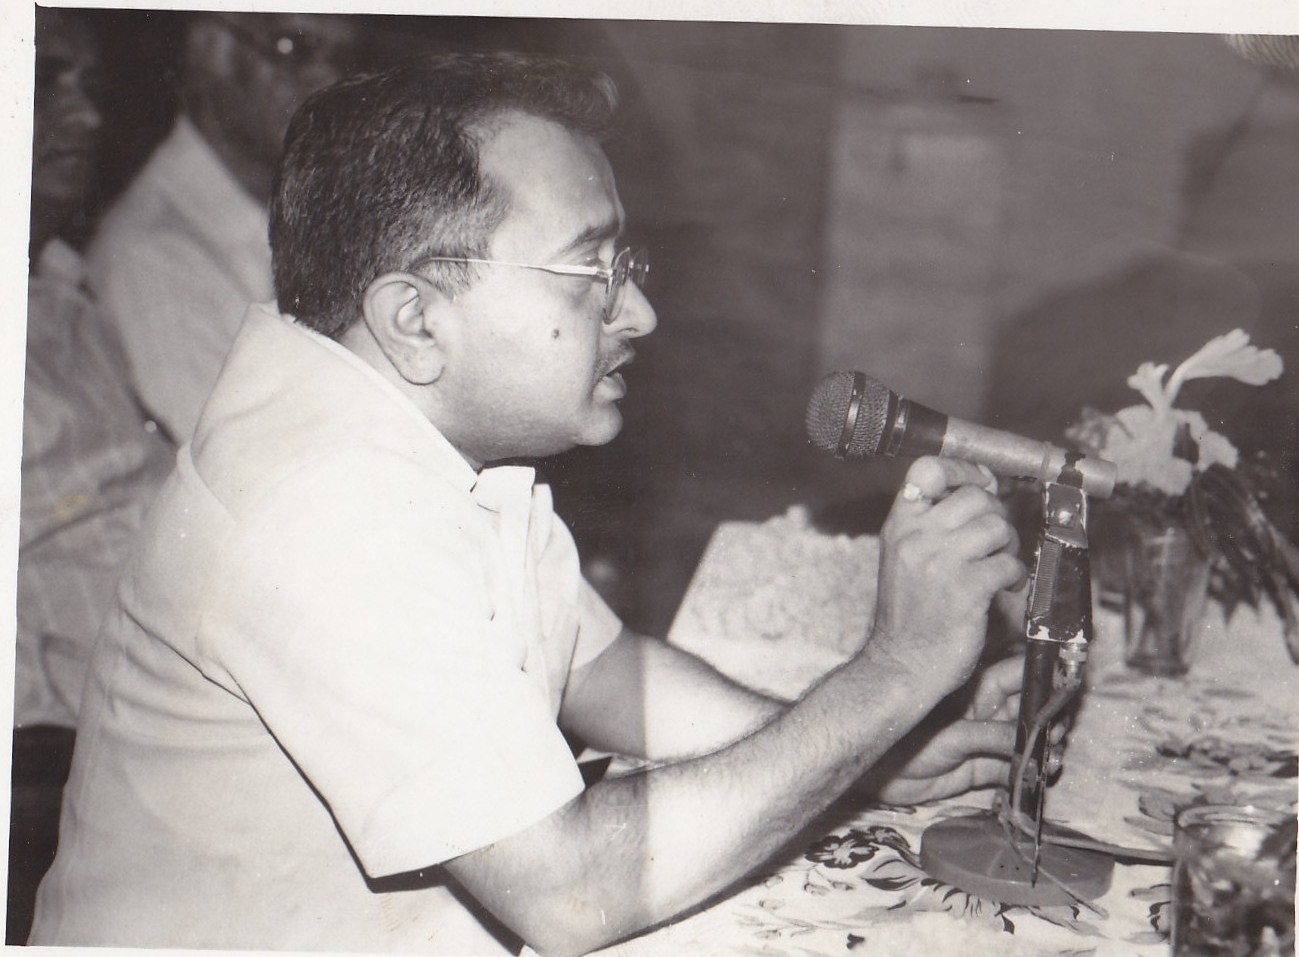 Participating in the literary programme during his early years